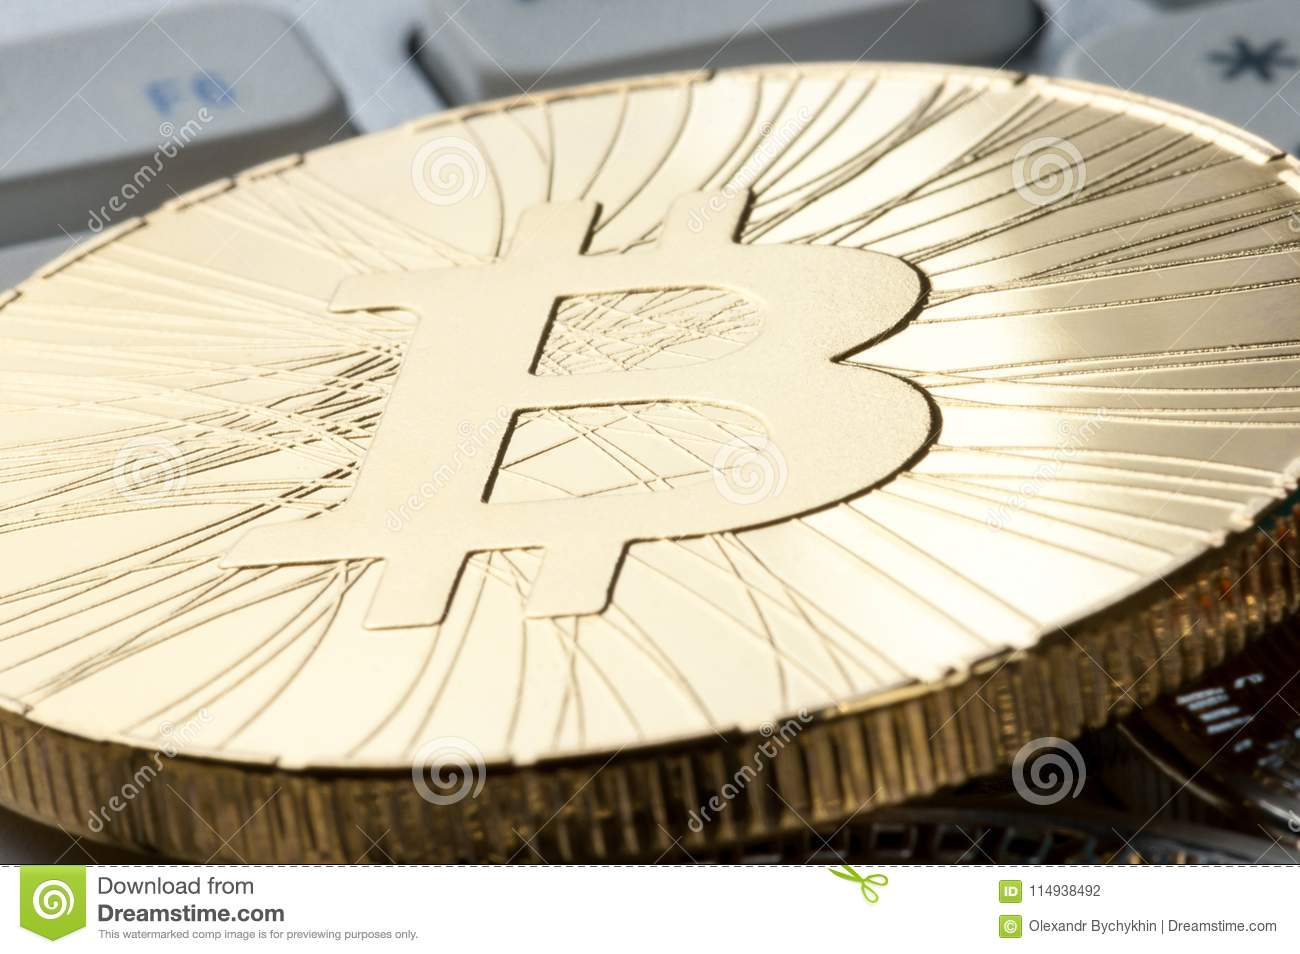 Forking crypto currency wiki cs go guide to betting